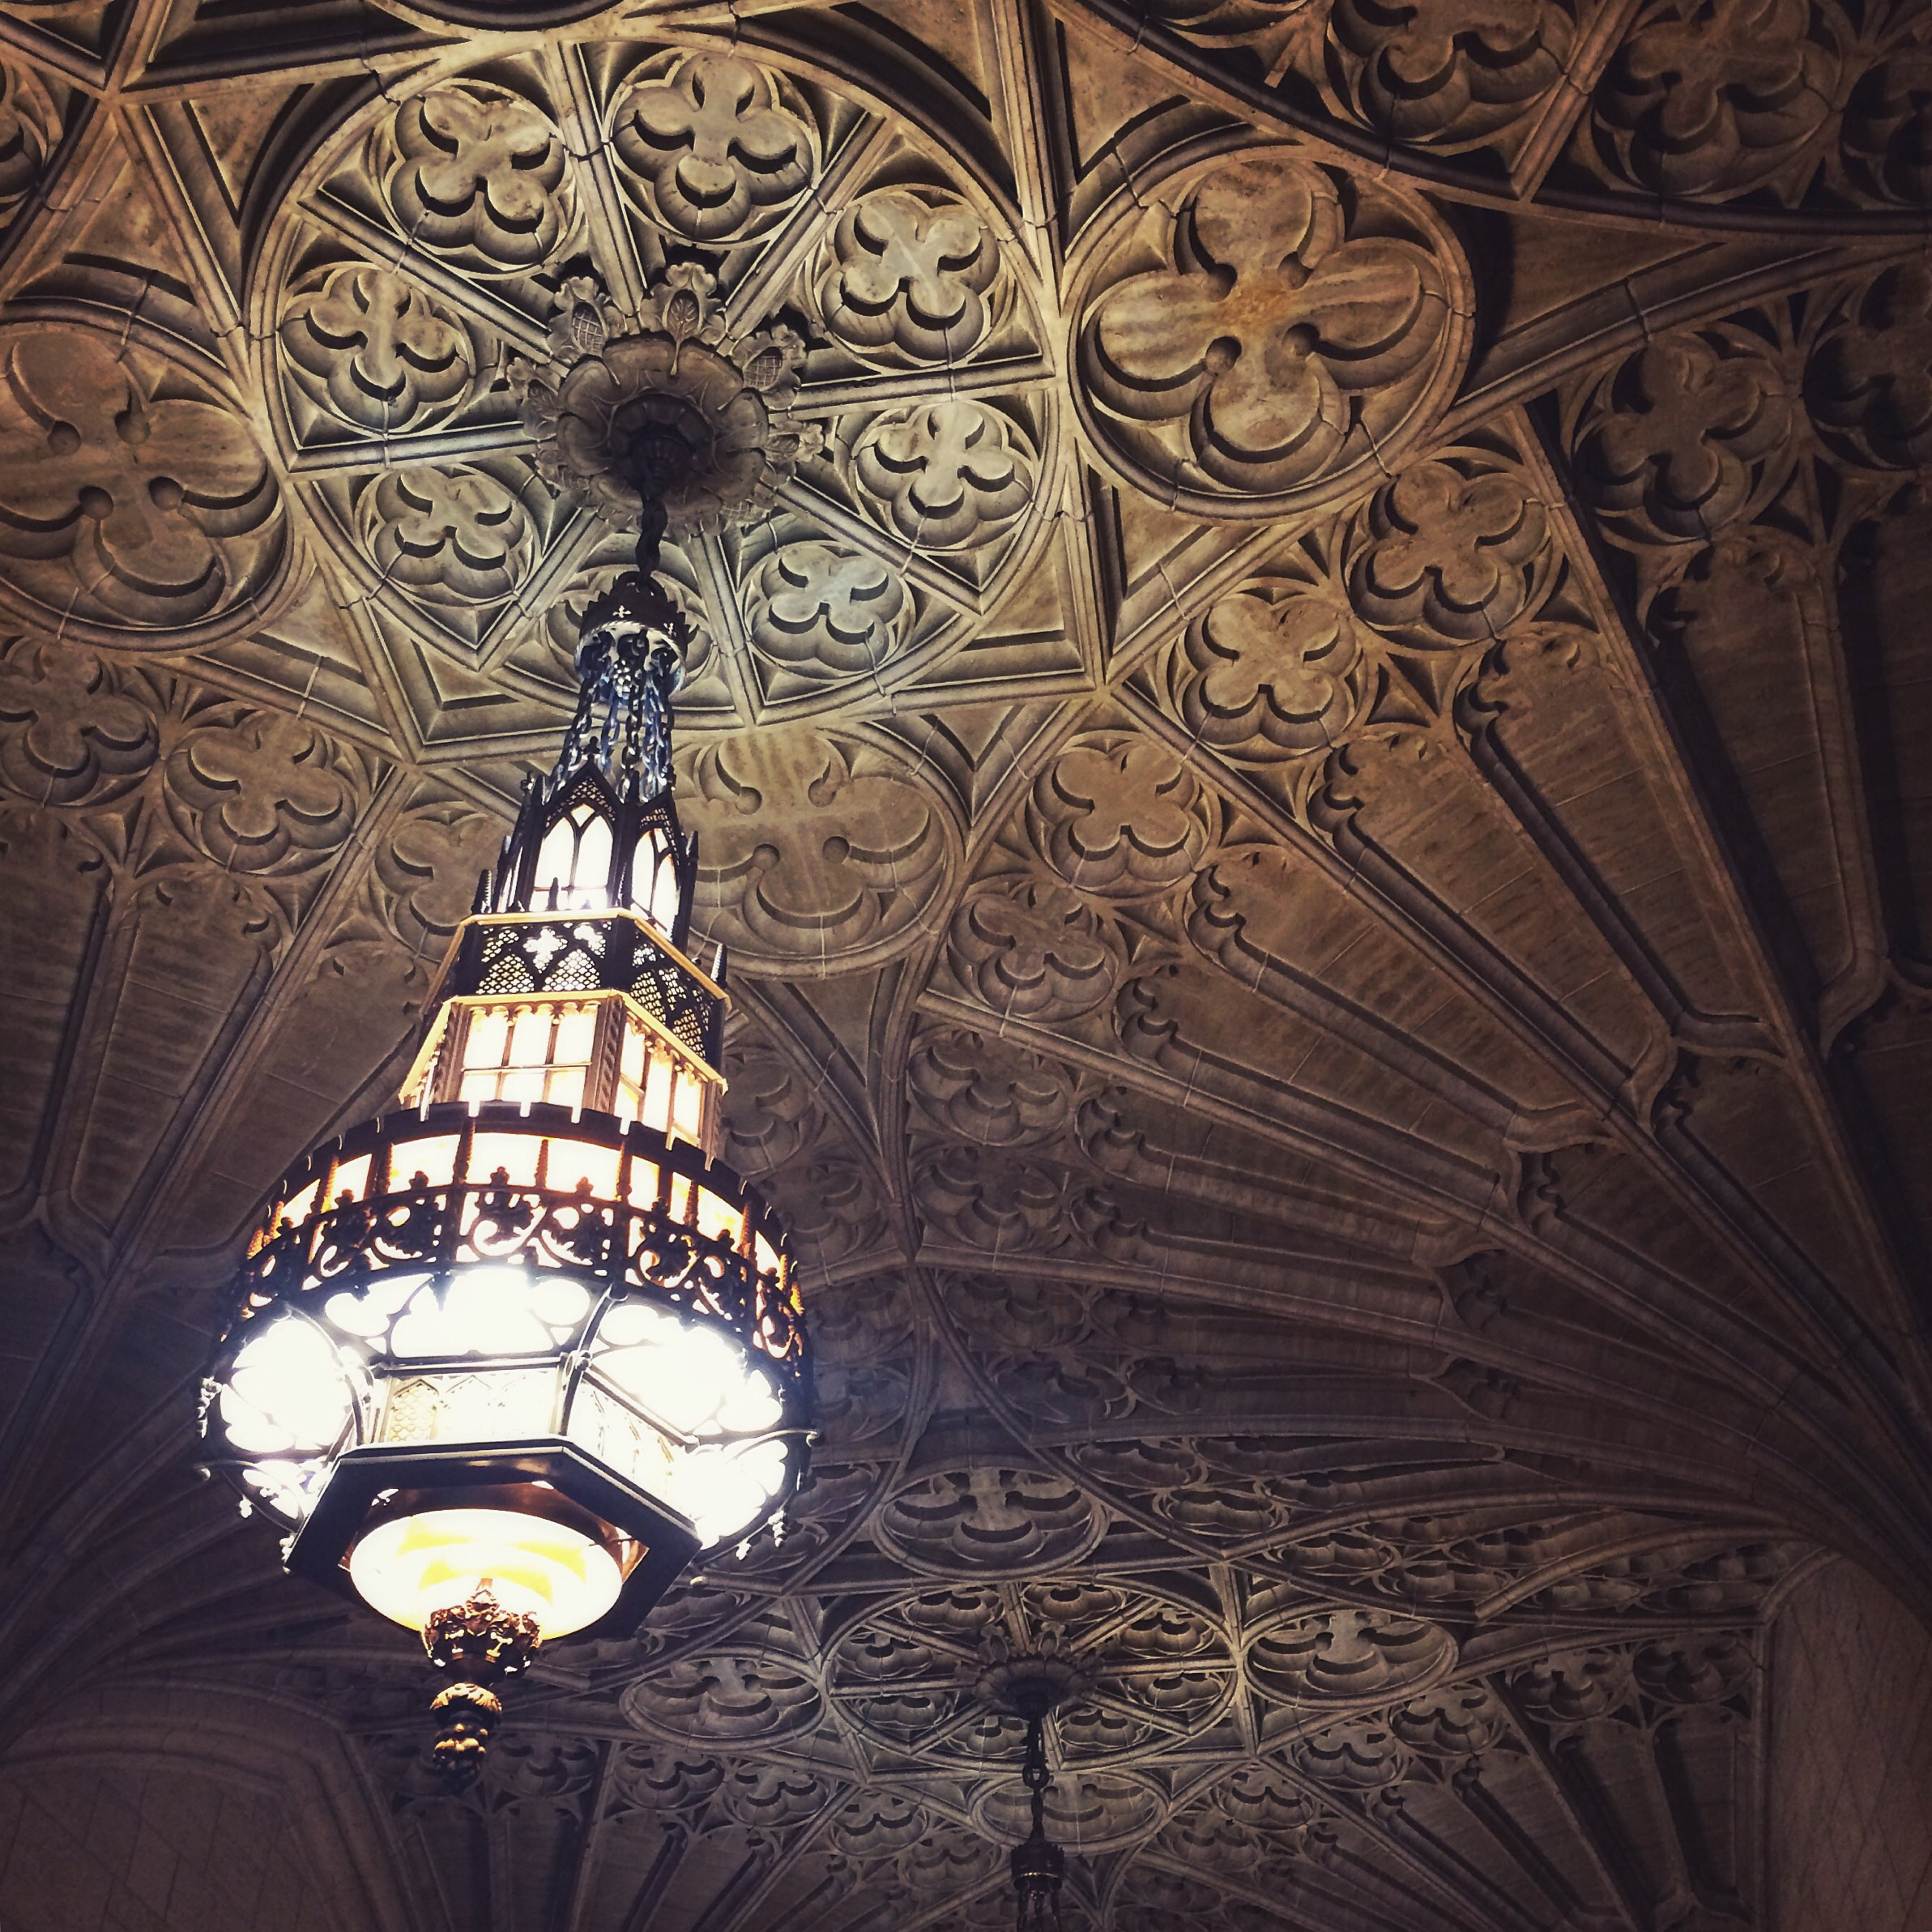 This is the ceiling in the Philtower! Isn't it amazing! It is carved travertine tile that was designed by artist from Italy!